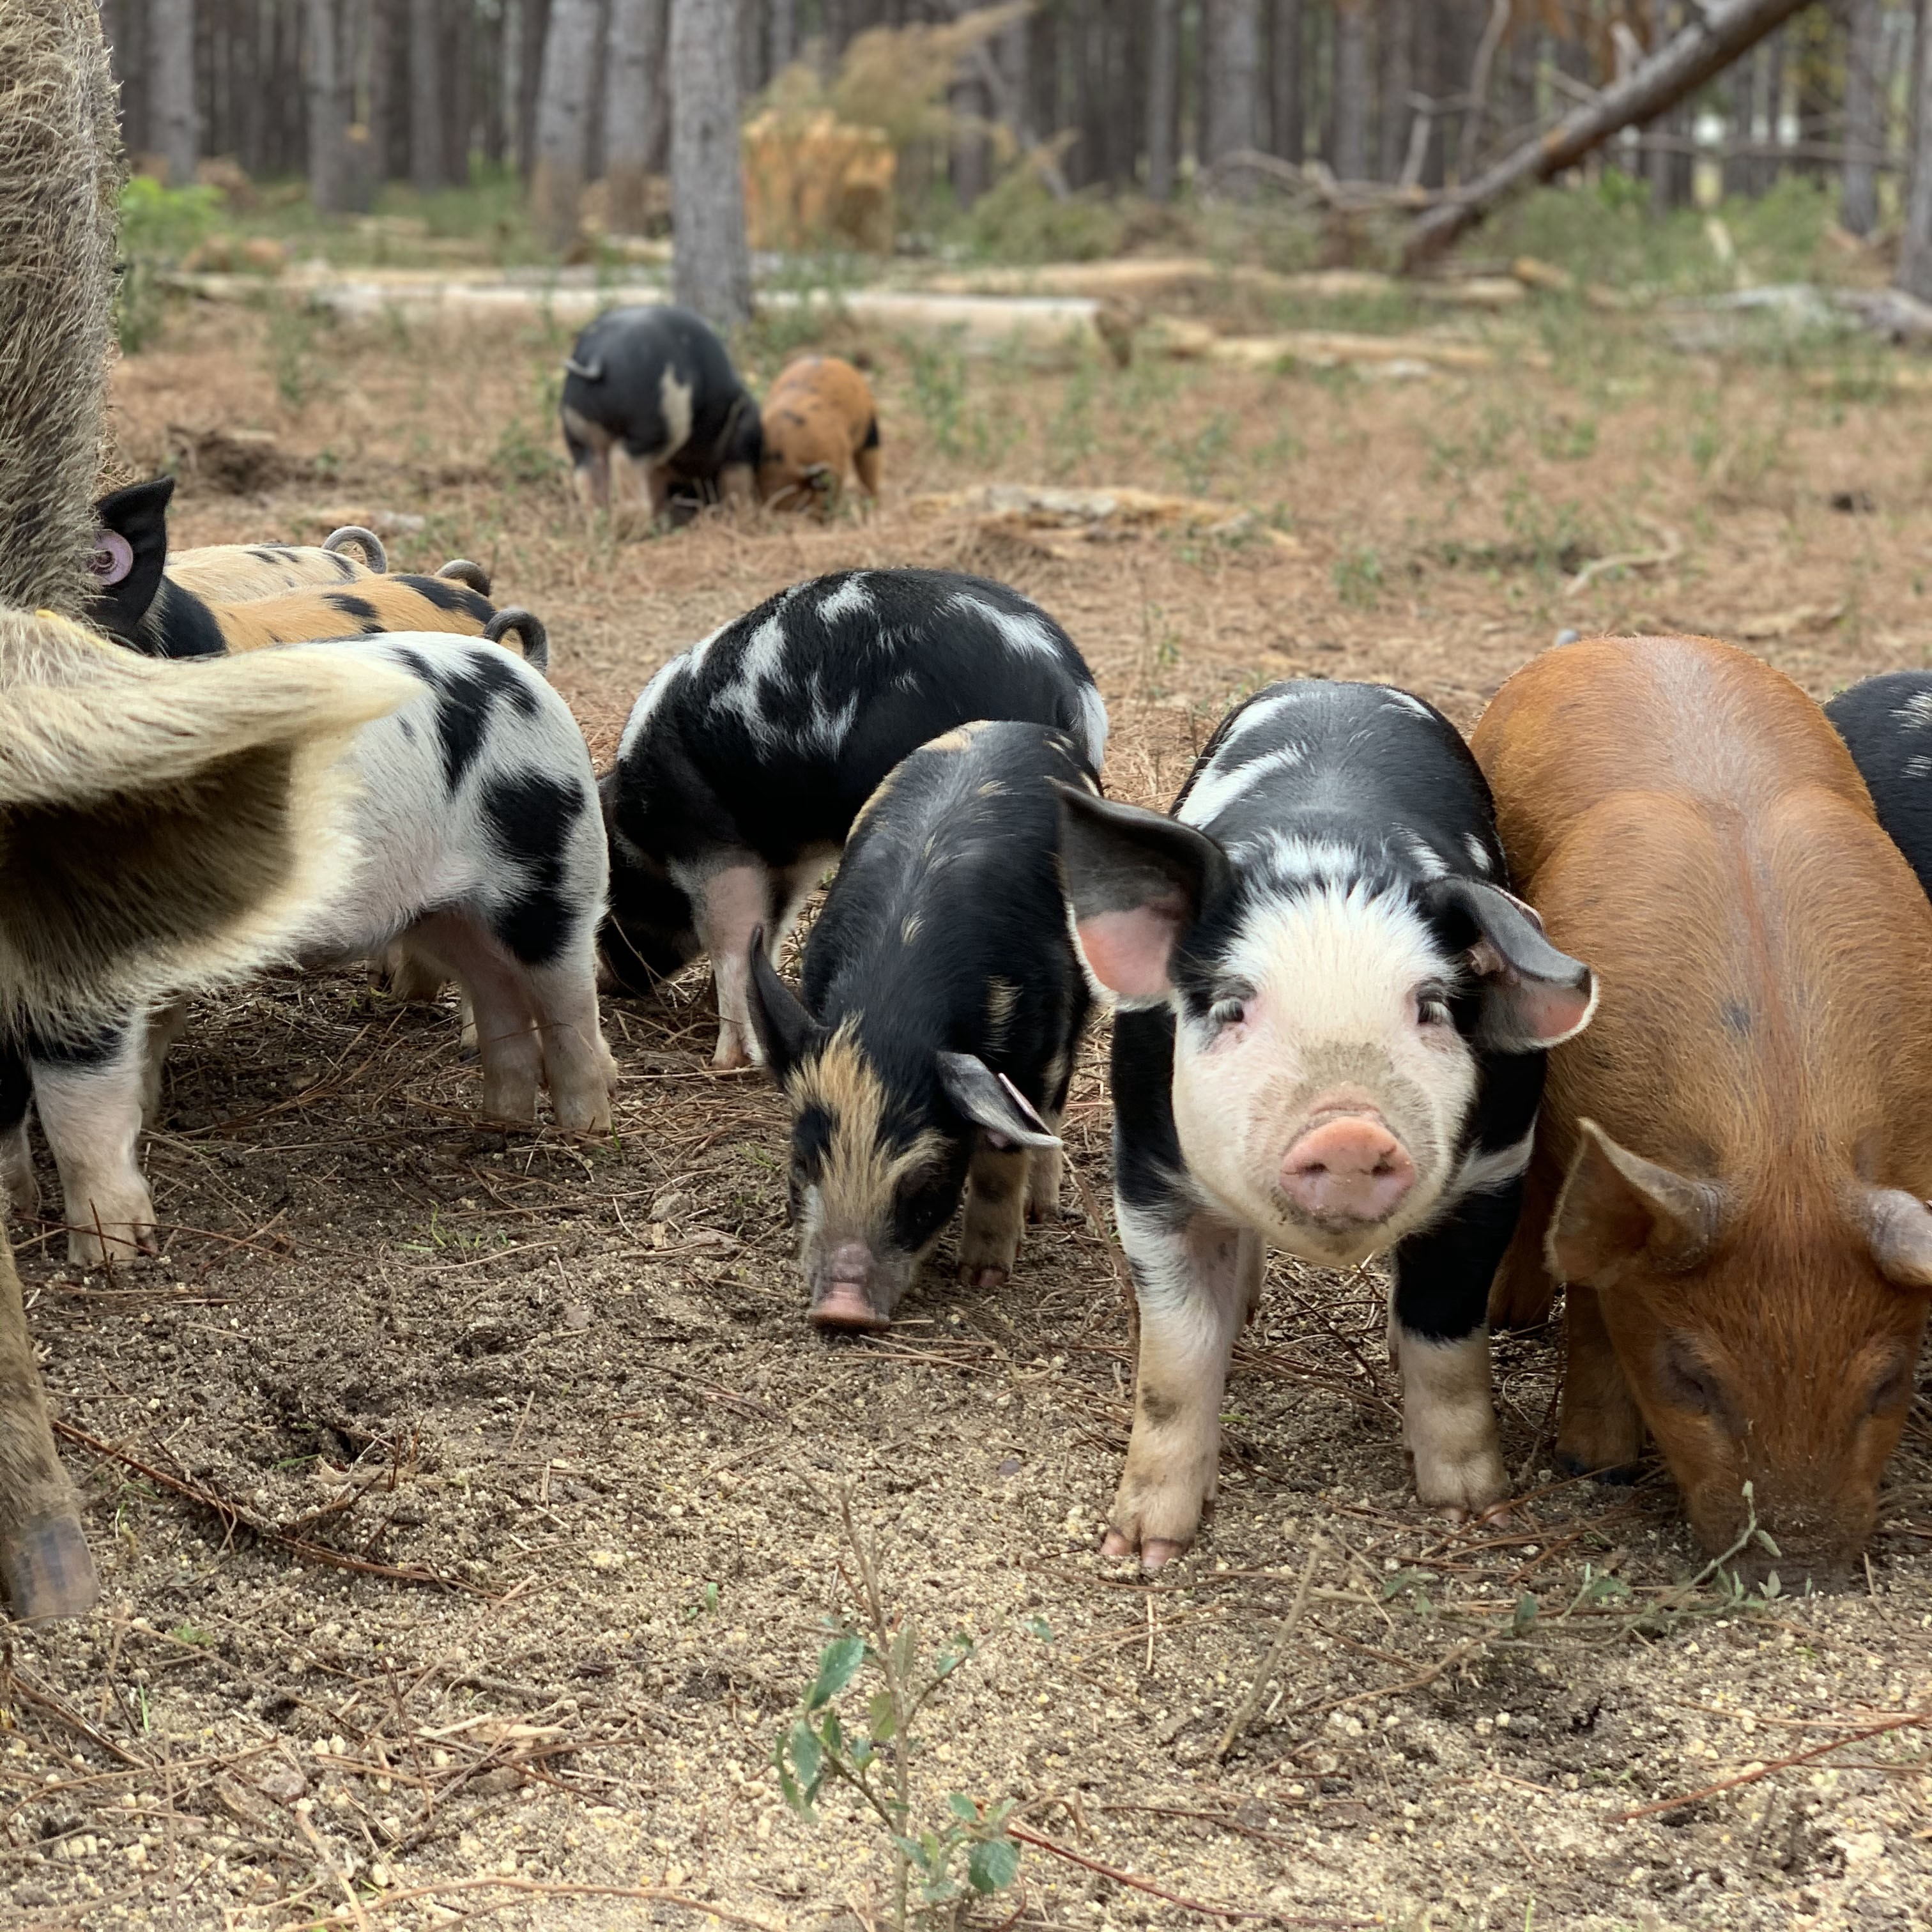 Piglets feeding in the woods